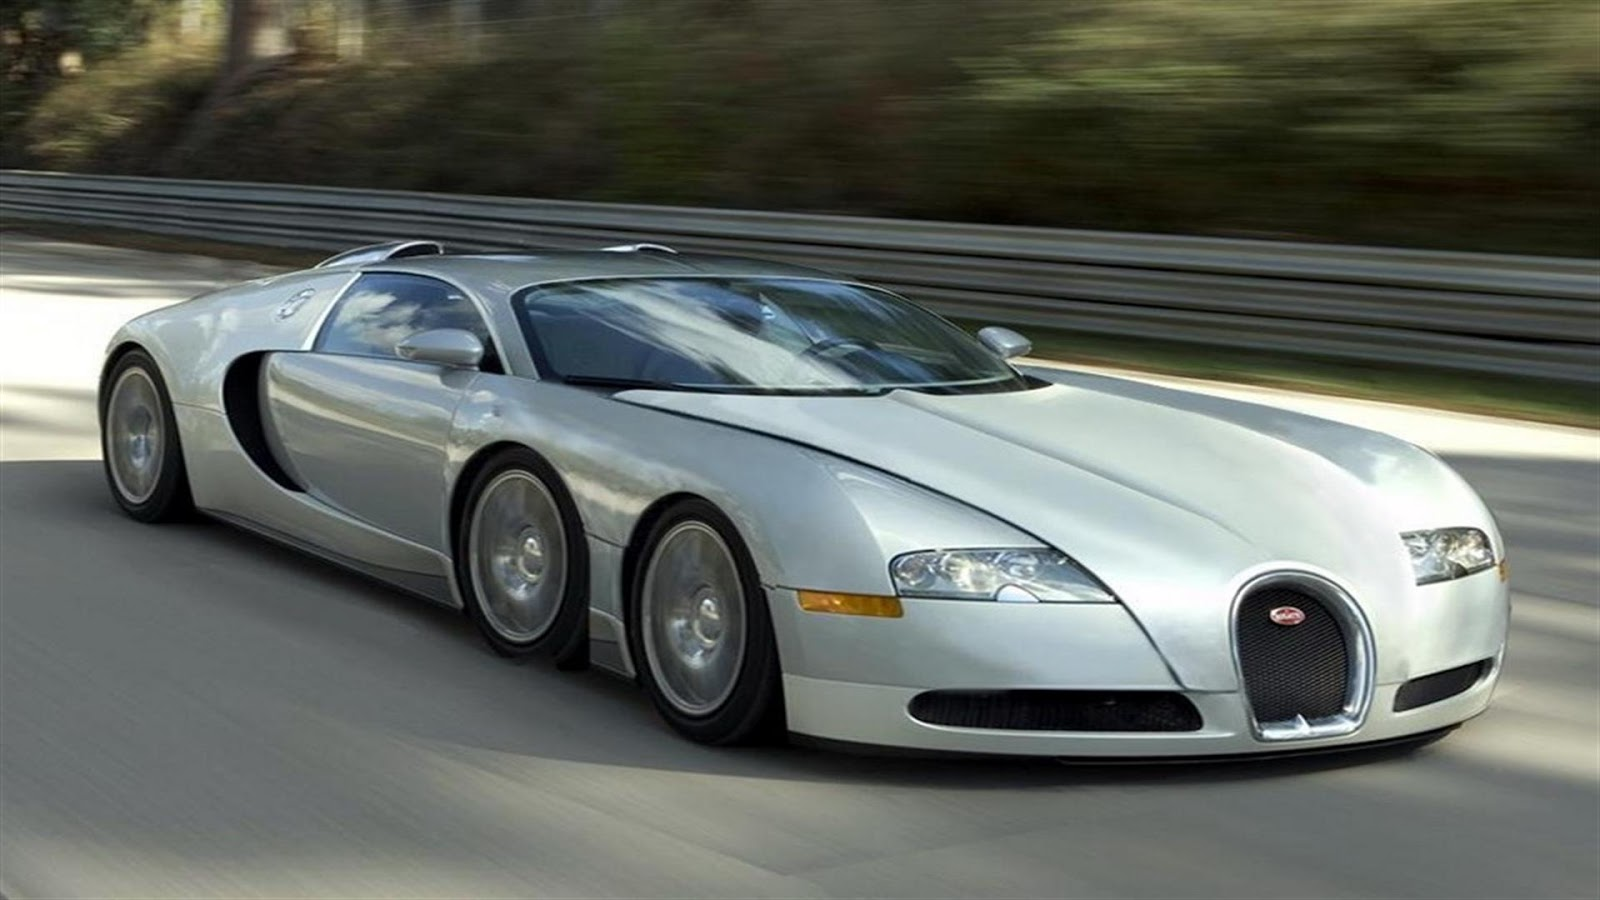 Bugatti Cars Wallpapers Hd: HD Wallpapers